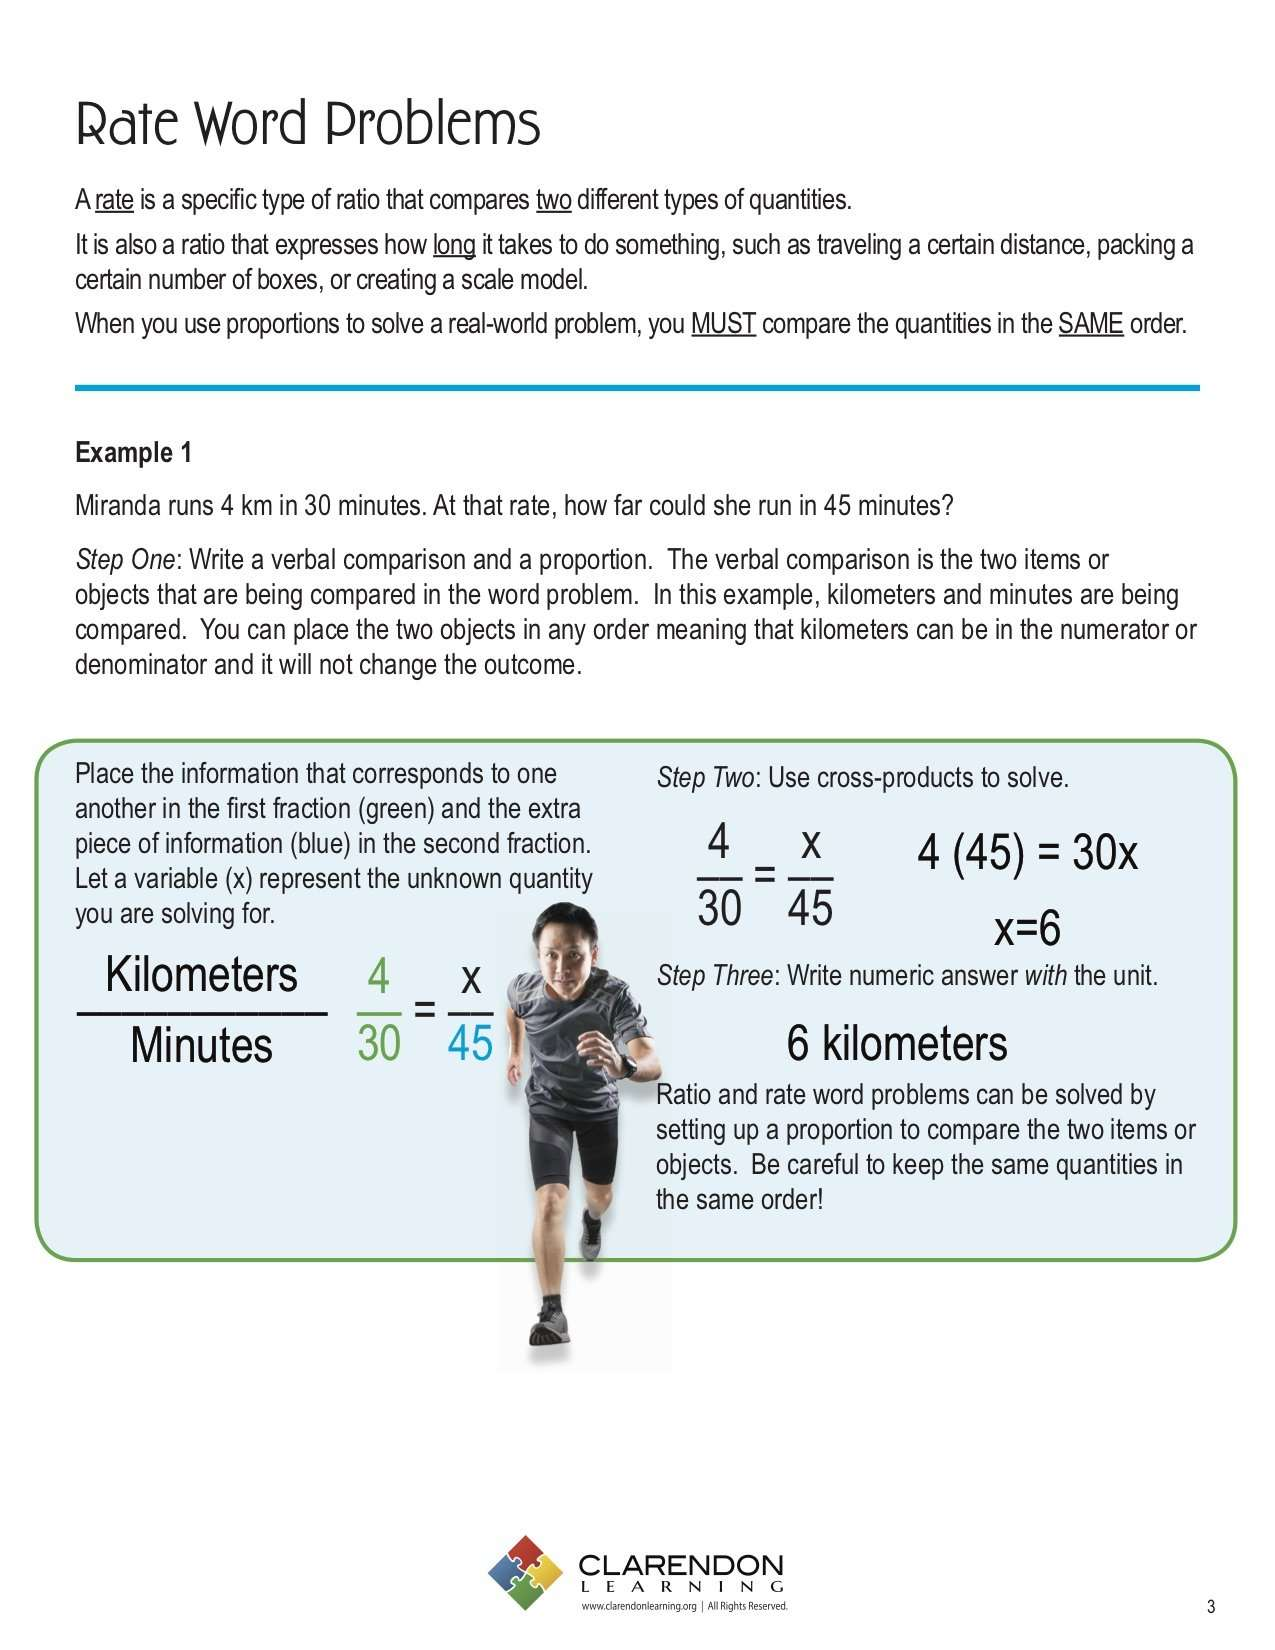 Ratio and Rate Word Problems